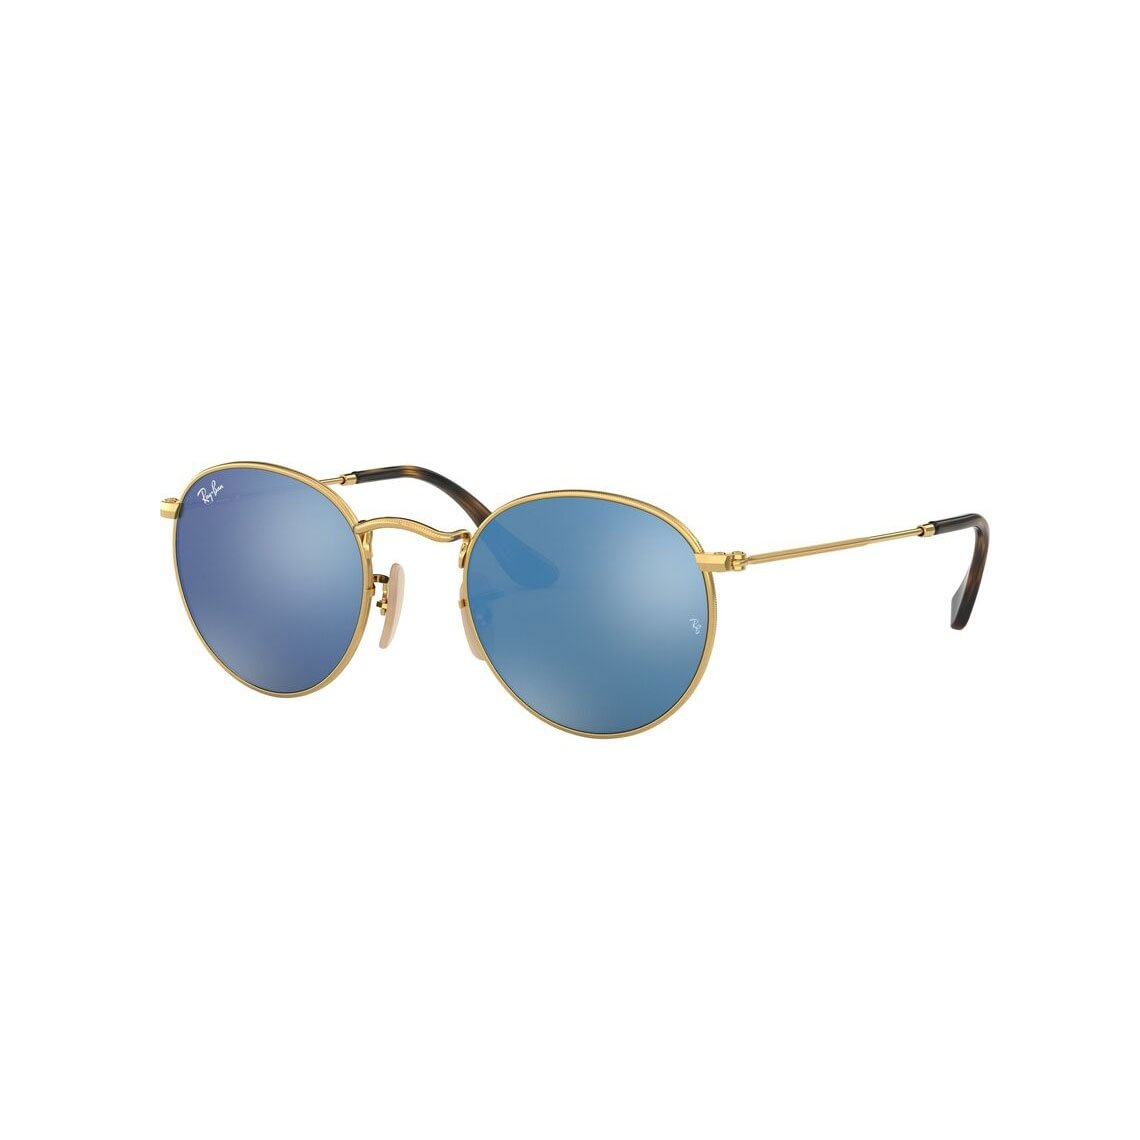 Ray-Ban Round metal RB3447N 001/9O 47